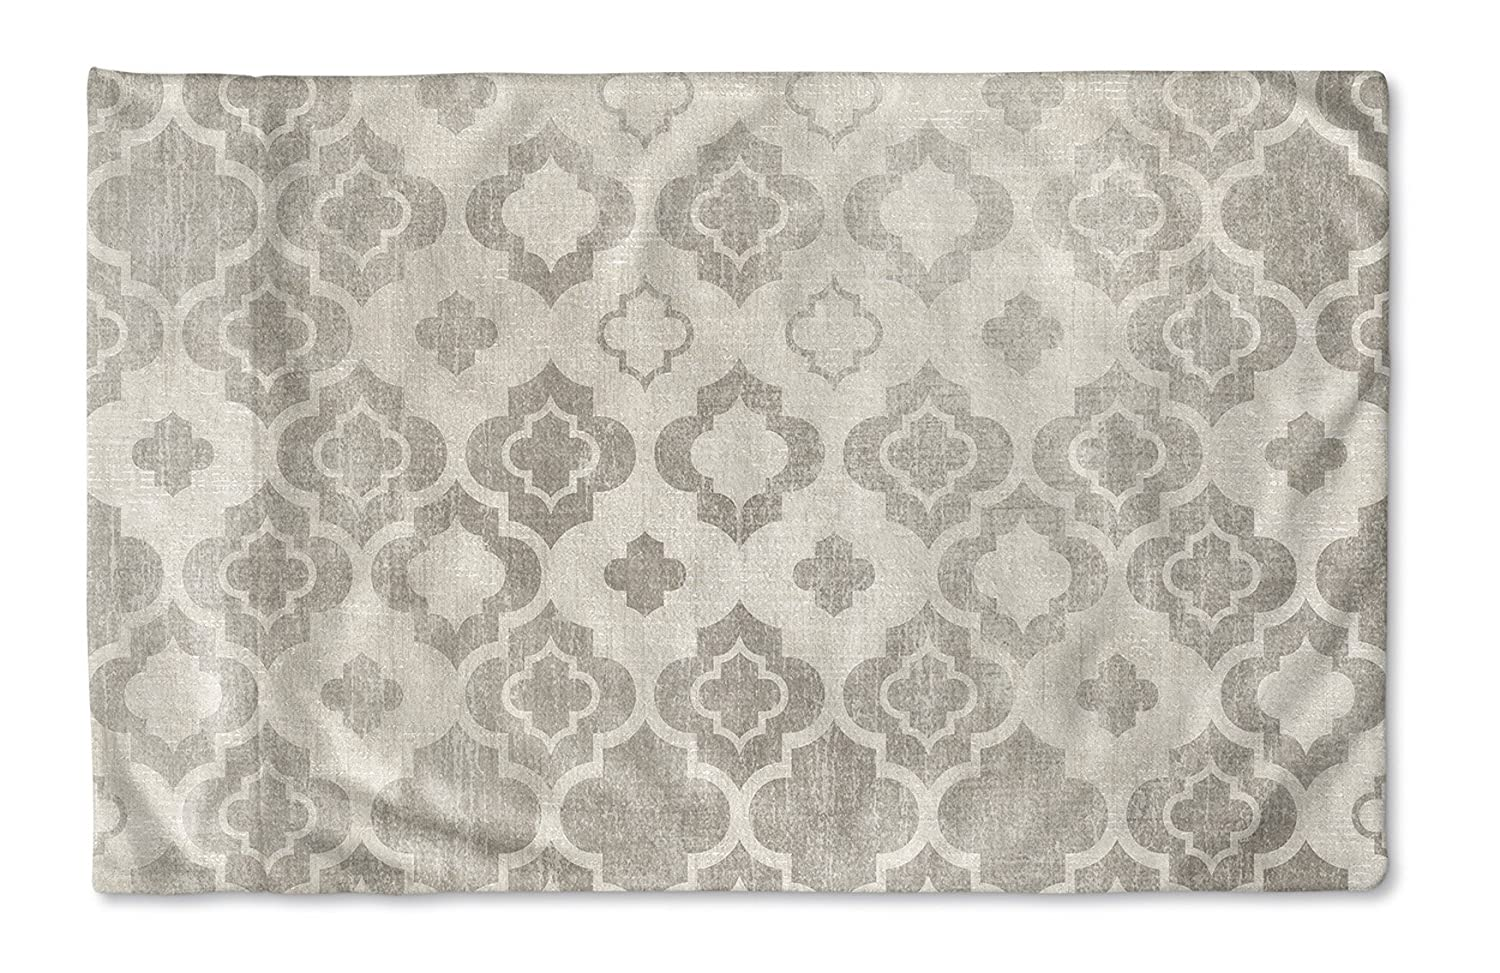 KAVKA Designs Trieste Pillow Case, (Grey/Ivory) - Encompass Collection, Size: 40X20X1 - (TELAVC1475PC42)